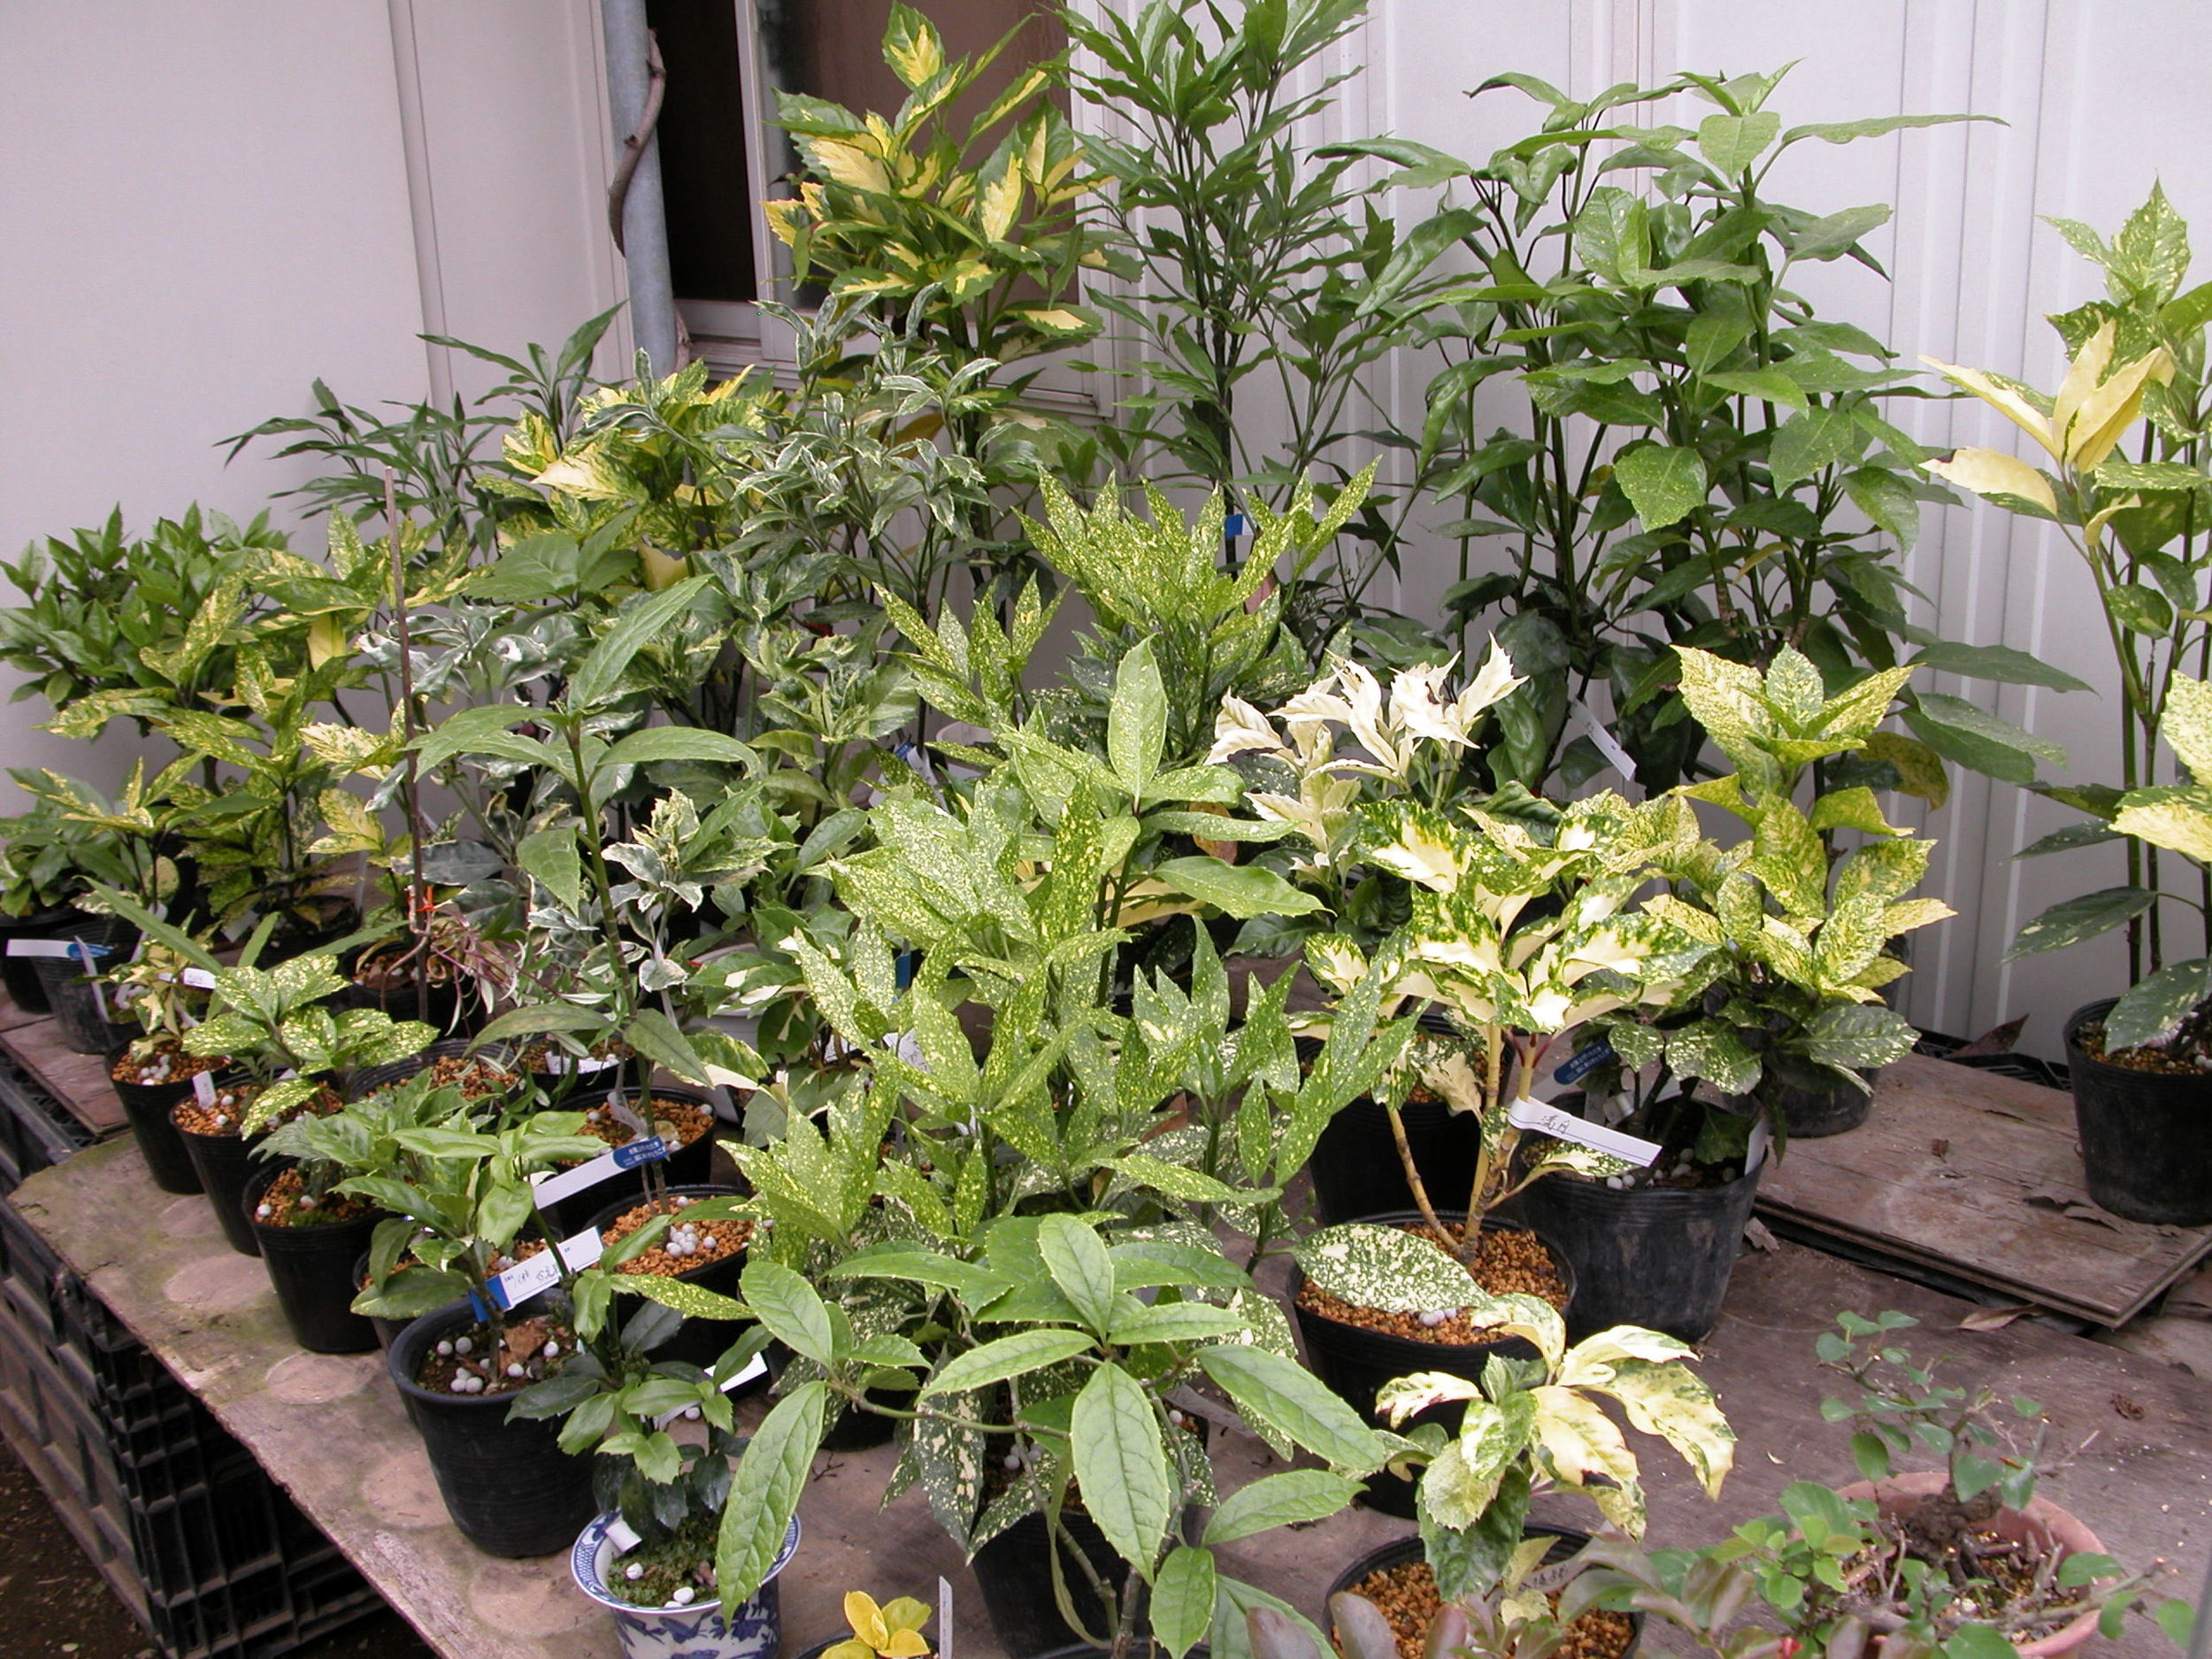 An impressive collection of aucuba in Japan at Garden Kinosata